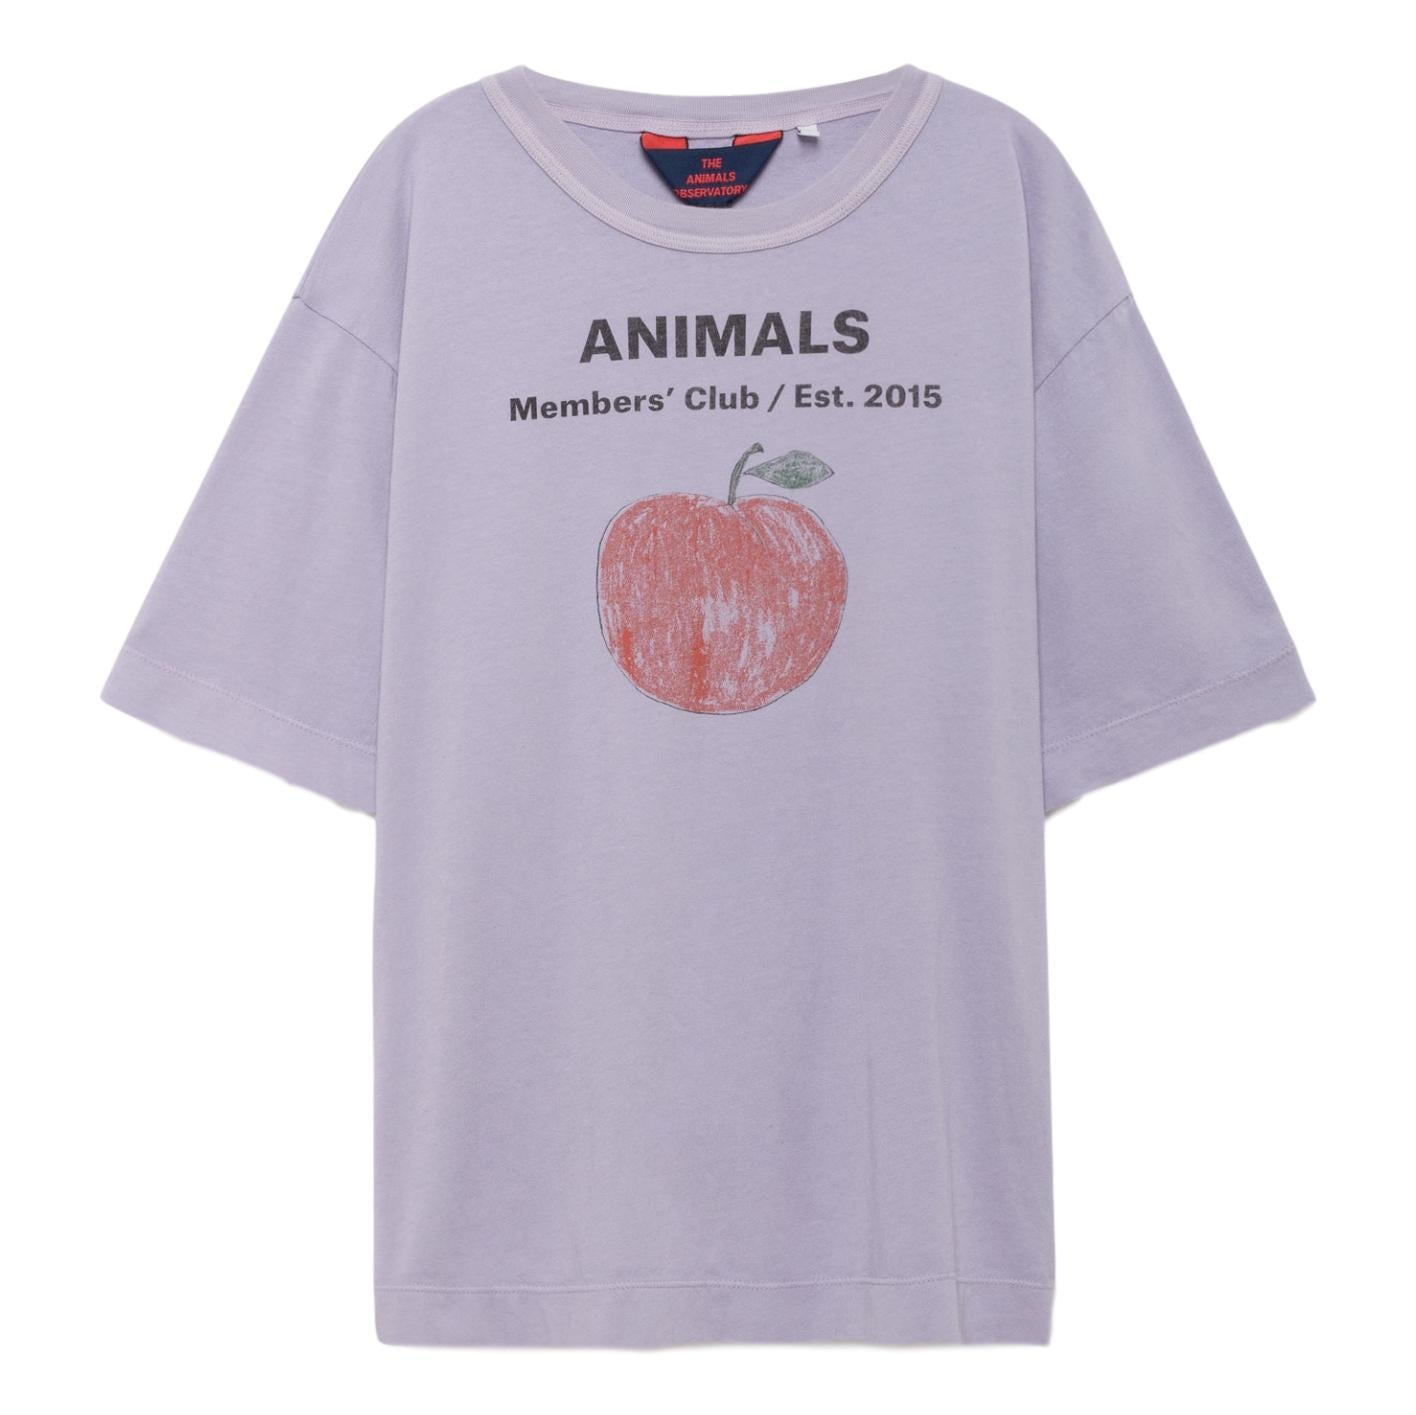 THE ANIMALS OBSERVATORY - Lavand Peach Rooster Oversized Kids Tee